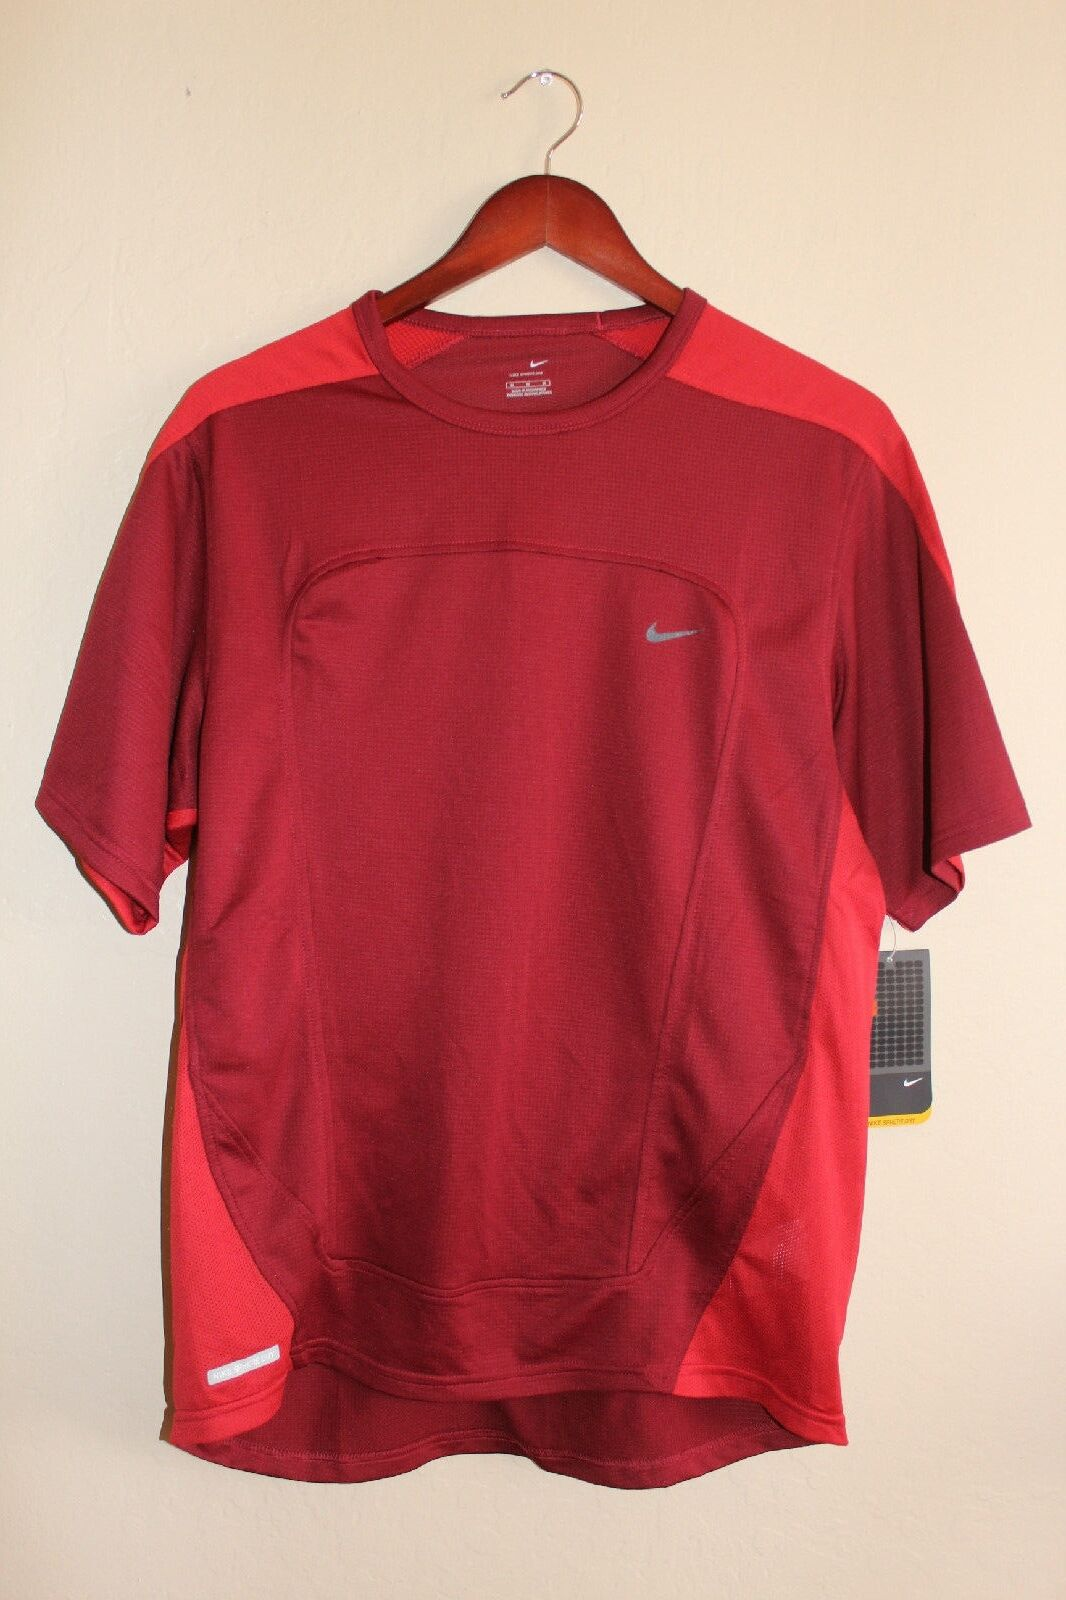 NEW Mens NIKE Sphere Dry Short Sleeve Mesh Training Shirt - Red - Size Medium